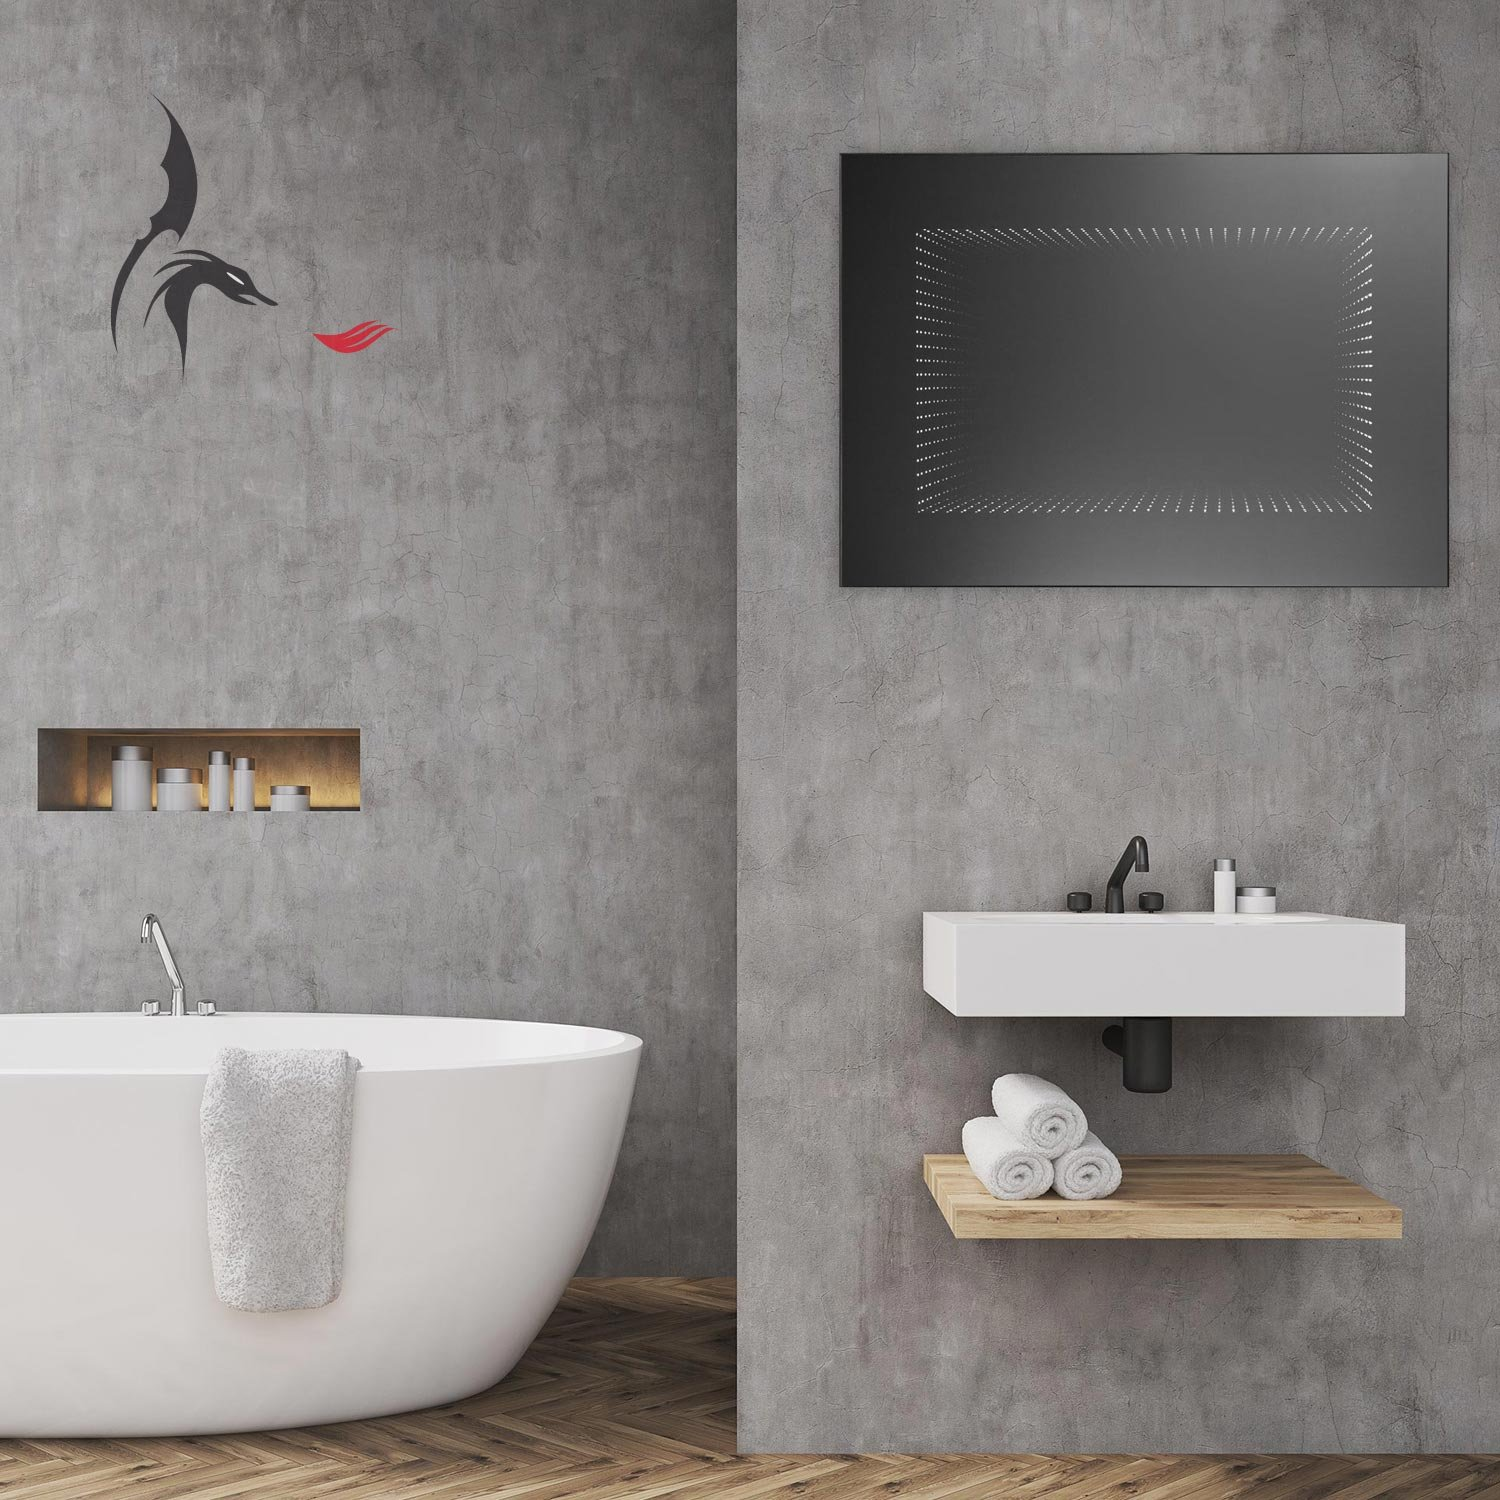 3d Led Bathroom Mirror Infinity Leipzig 70 X 50 X 7 Cm Light Mirror With Led Tunnel Effect Energy Class A Weee Reg No De 40647673 Buy Online In Albania At Albania Desertcart Com Productid 61829868